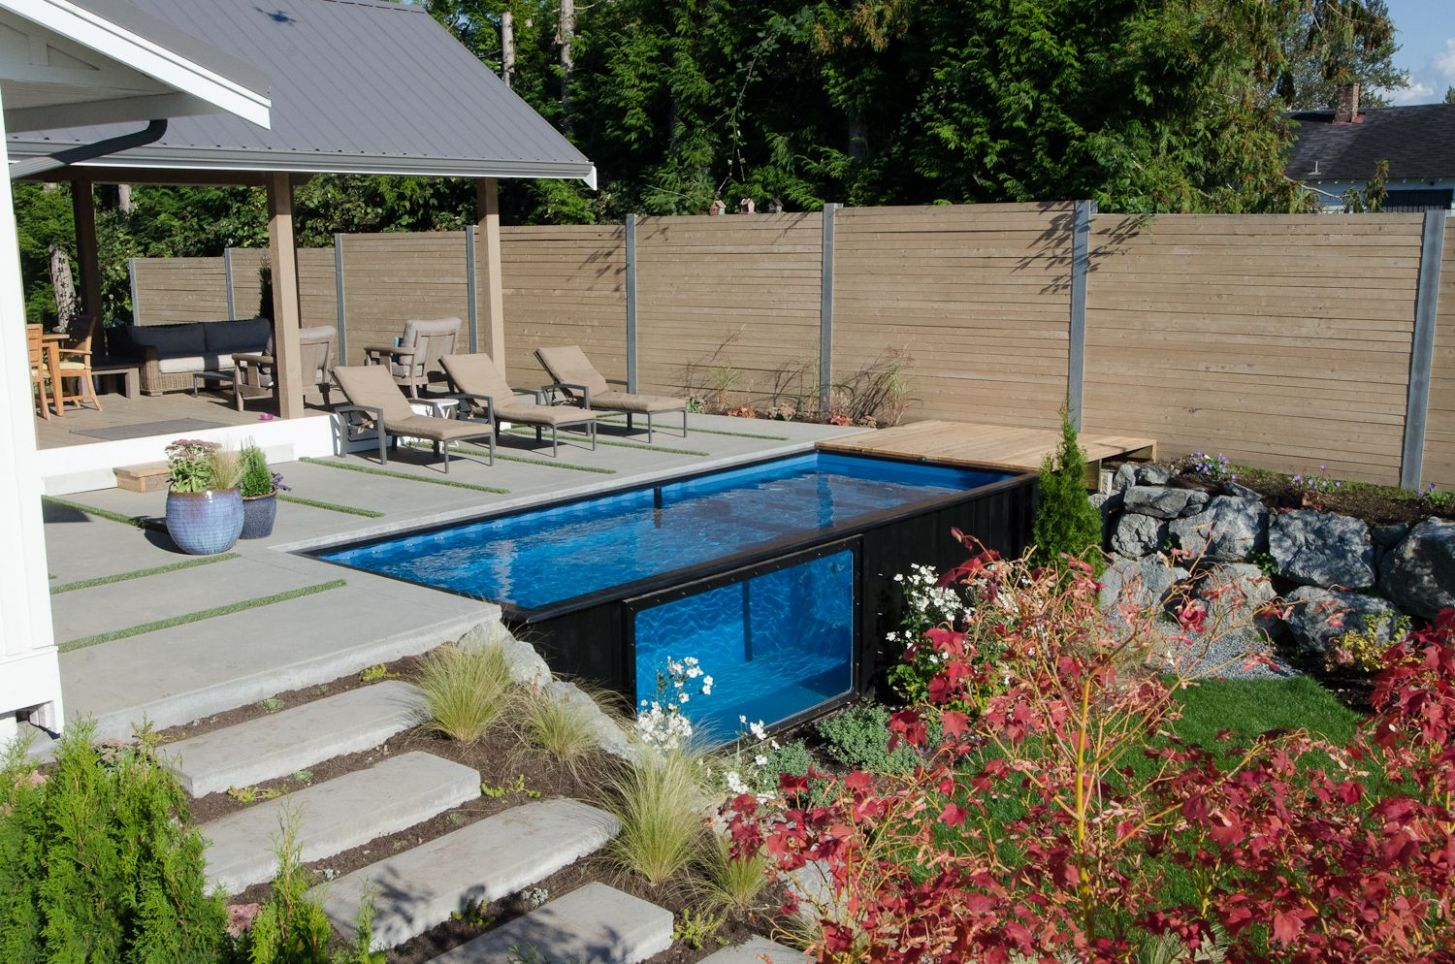 10 In-Ground Pool Designs - Best Swimming Pool Design Ideas for ..